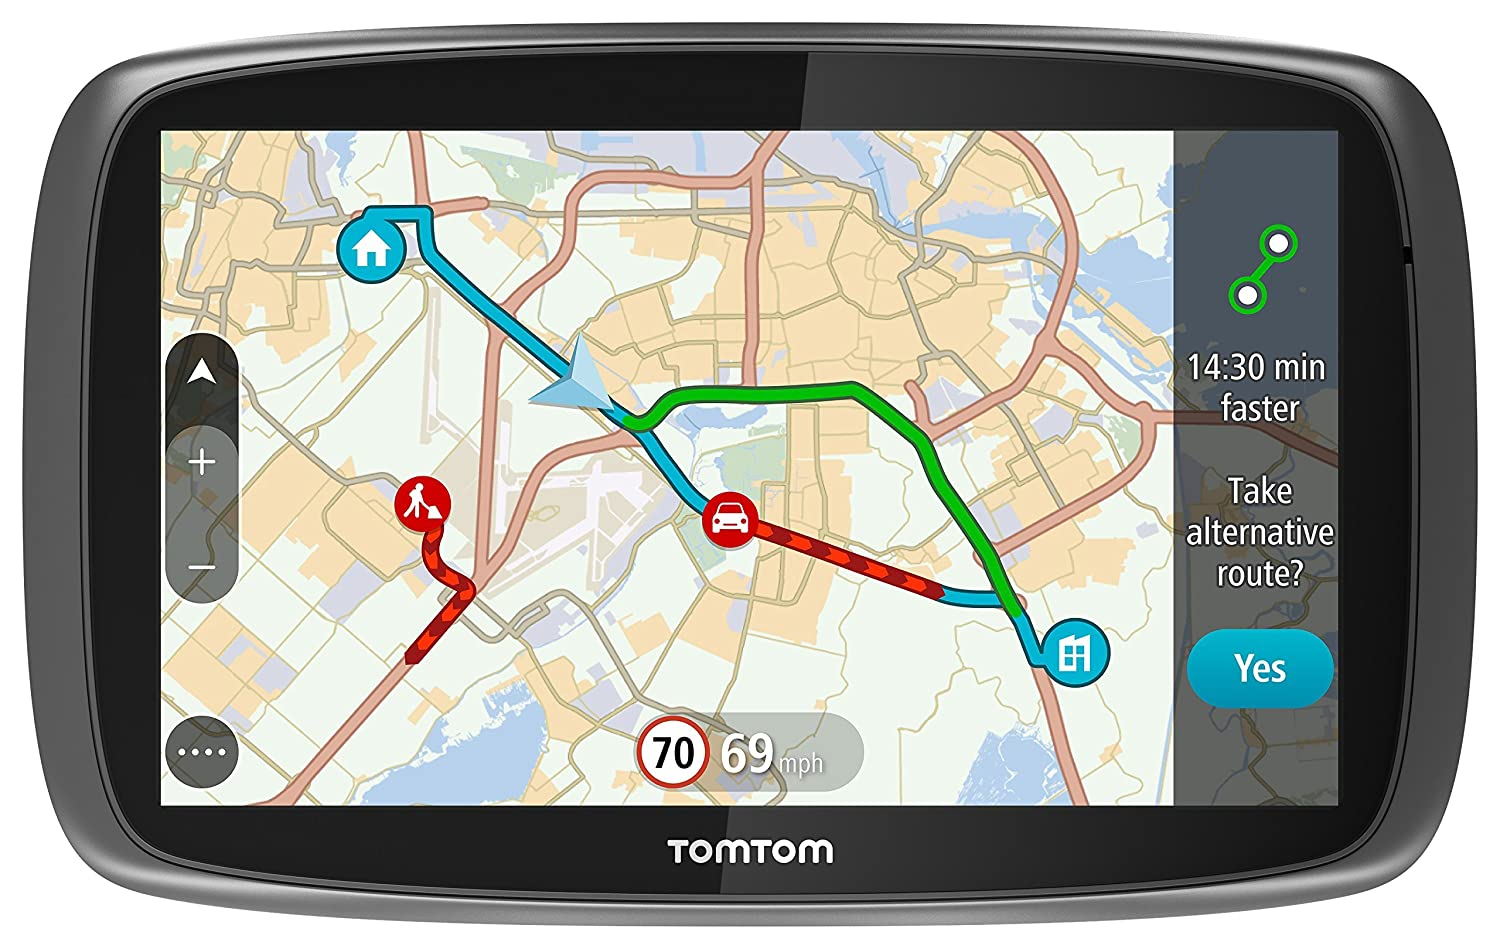 Tomtom Go 5100 5 Inch Sat Nav With World Maps Sim Card And Australian 610 Phone Socket Wiring Diagram Unlimited Data Included Black Electronics